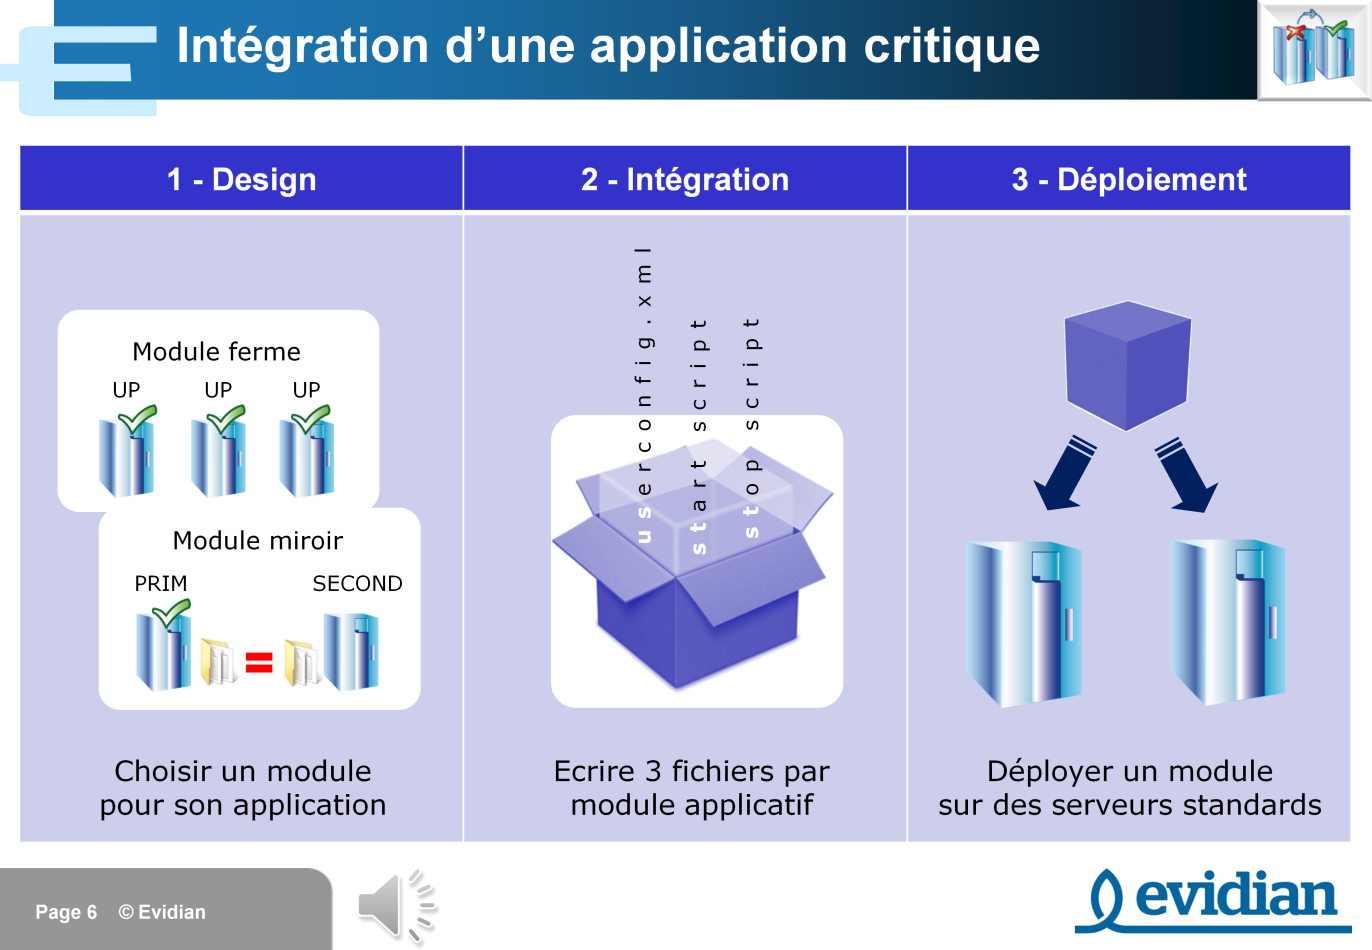 Transitions / Advance Slide / After 02:37 => pour un passage automatique au slide suivant Regardons maintenant le processus d intégration d une application critique dans SafeKit.